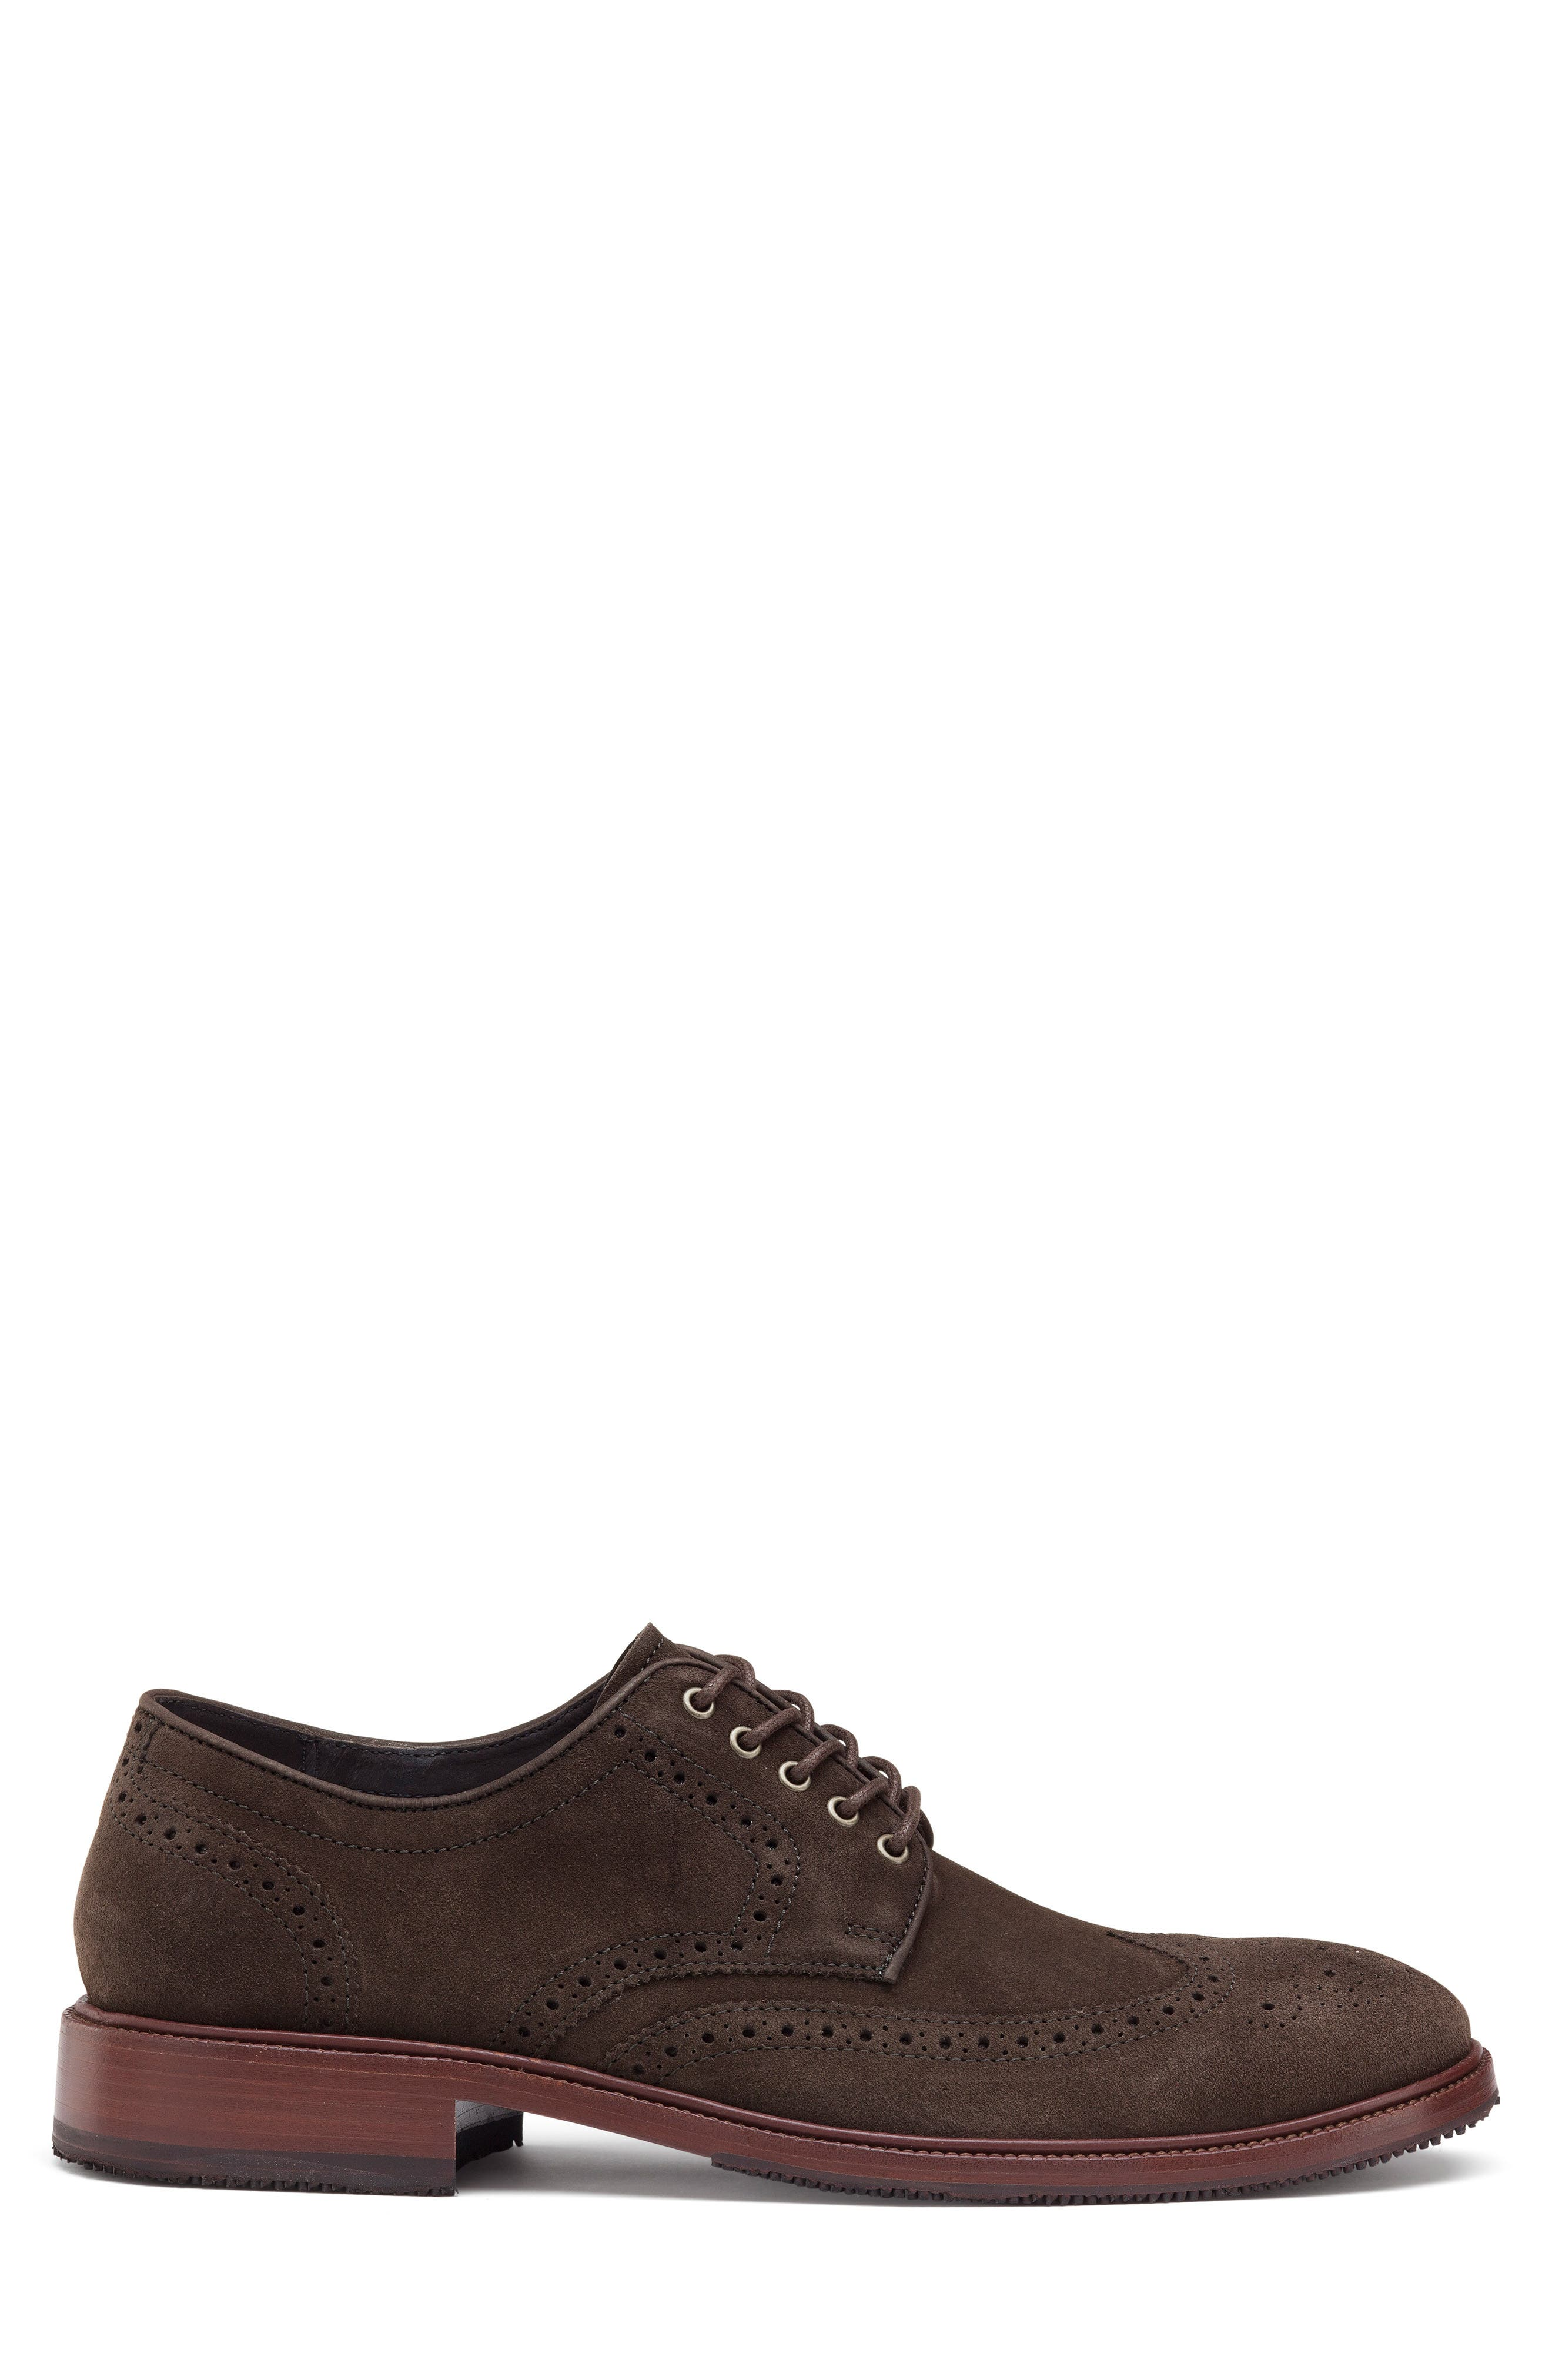 Logan Wingtip Derby,                             Alternate thumbnail 3, color,                             CHARCOAL SUEDE